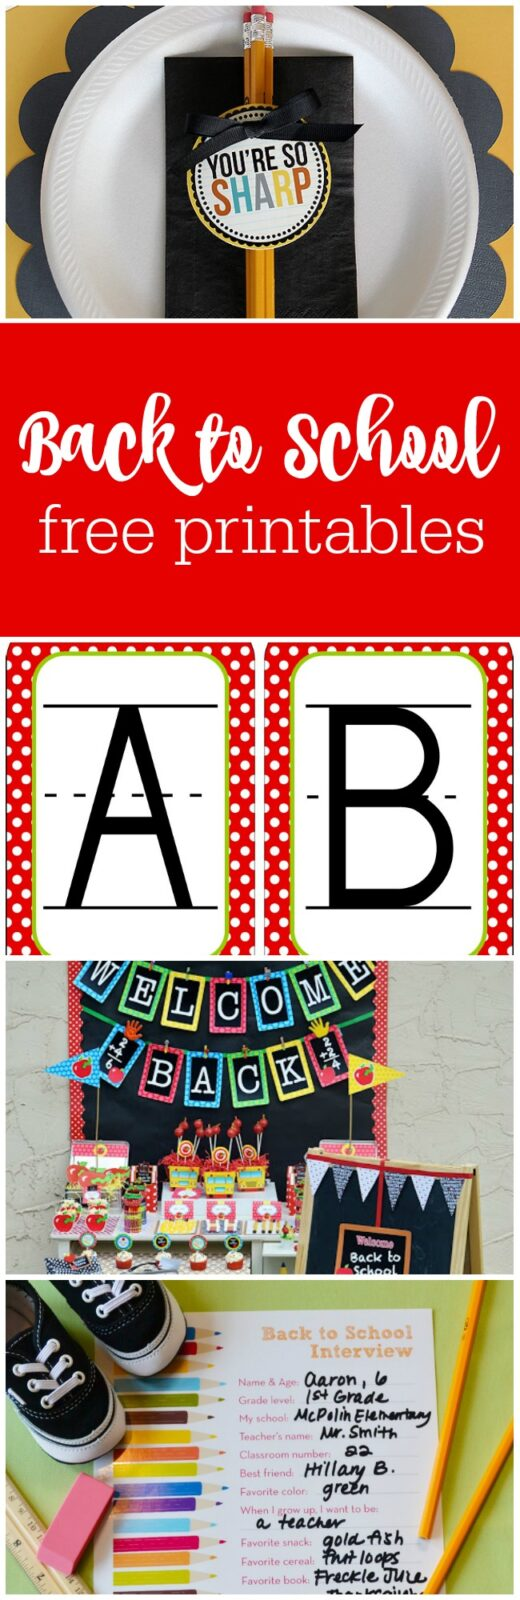 Free printables for back to school curated by The Party Teacher